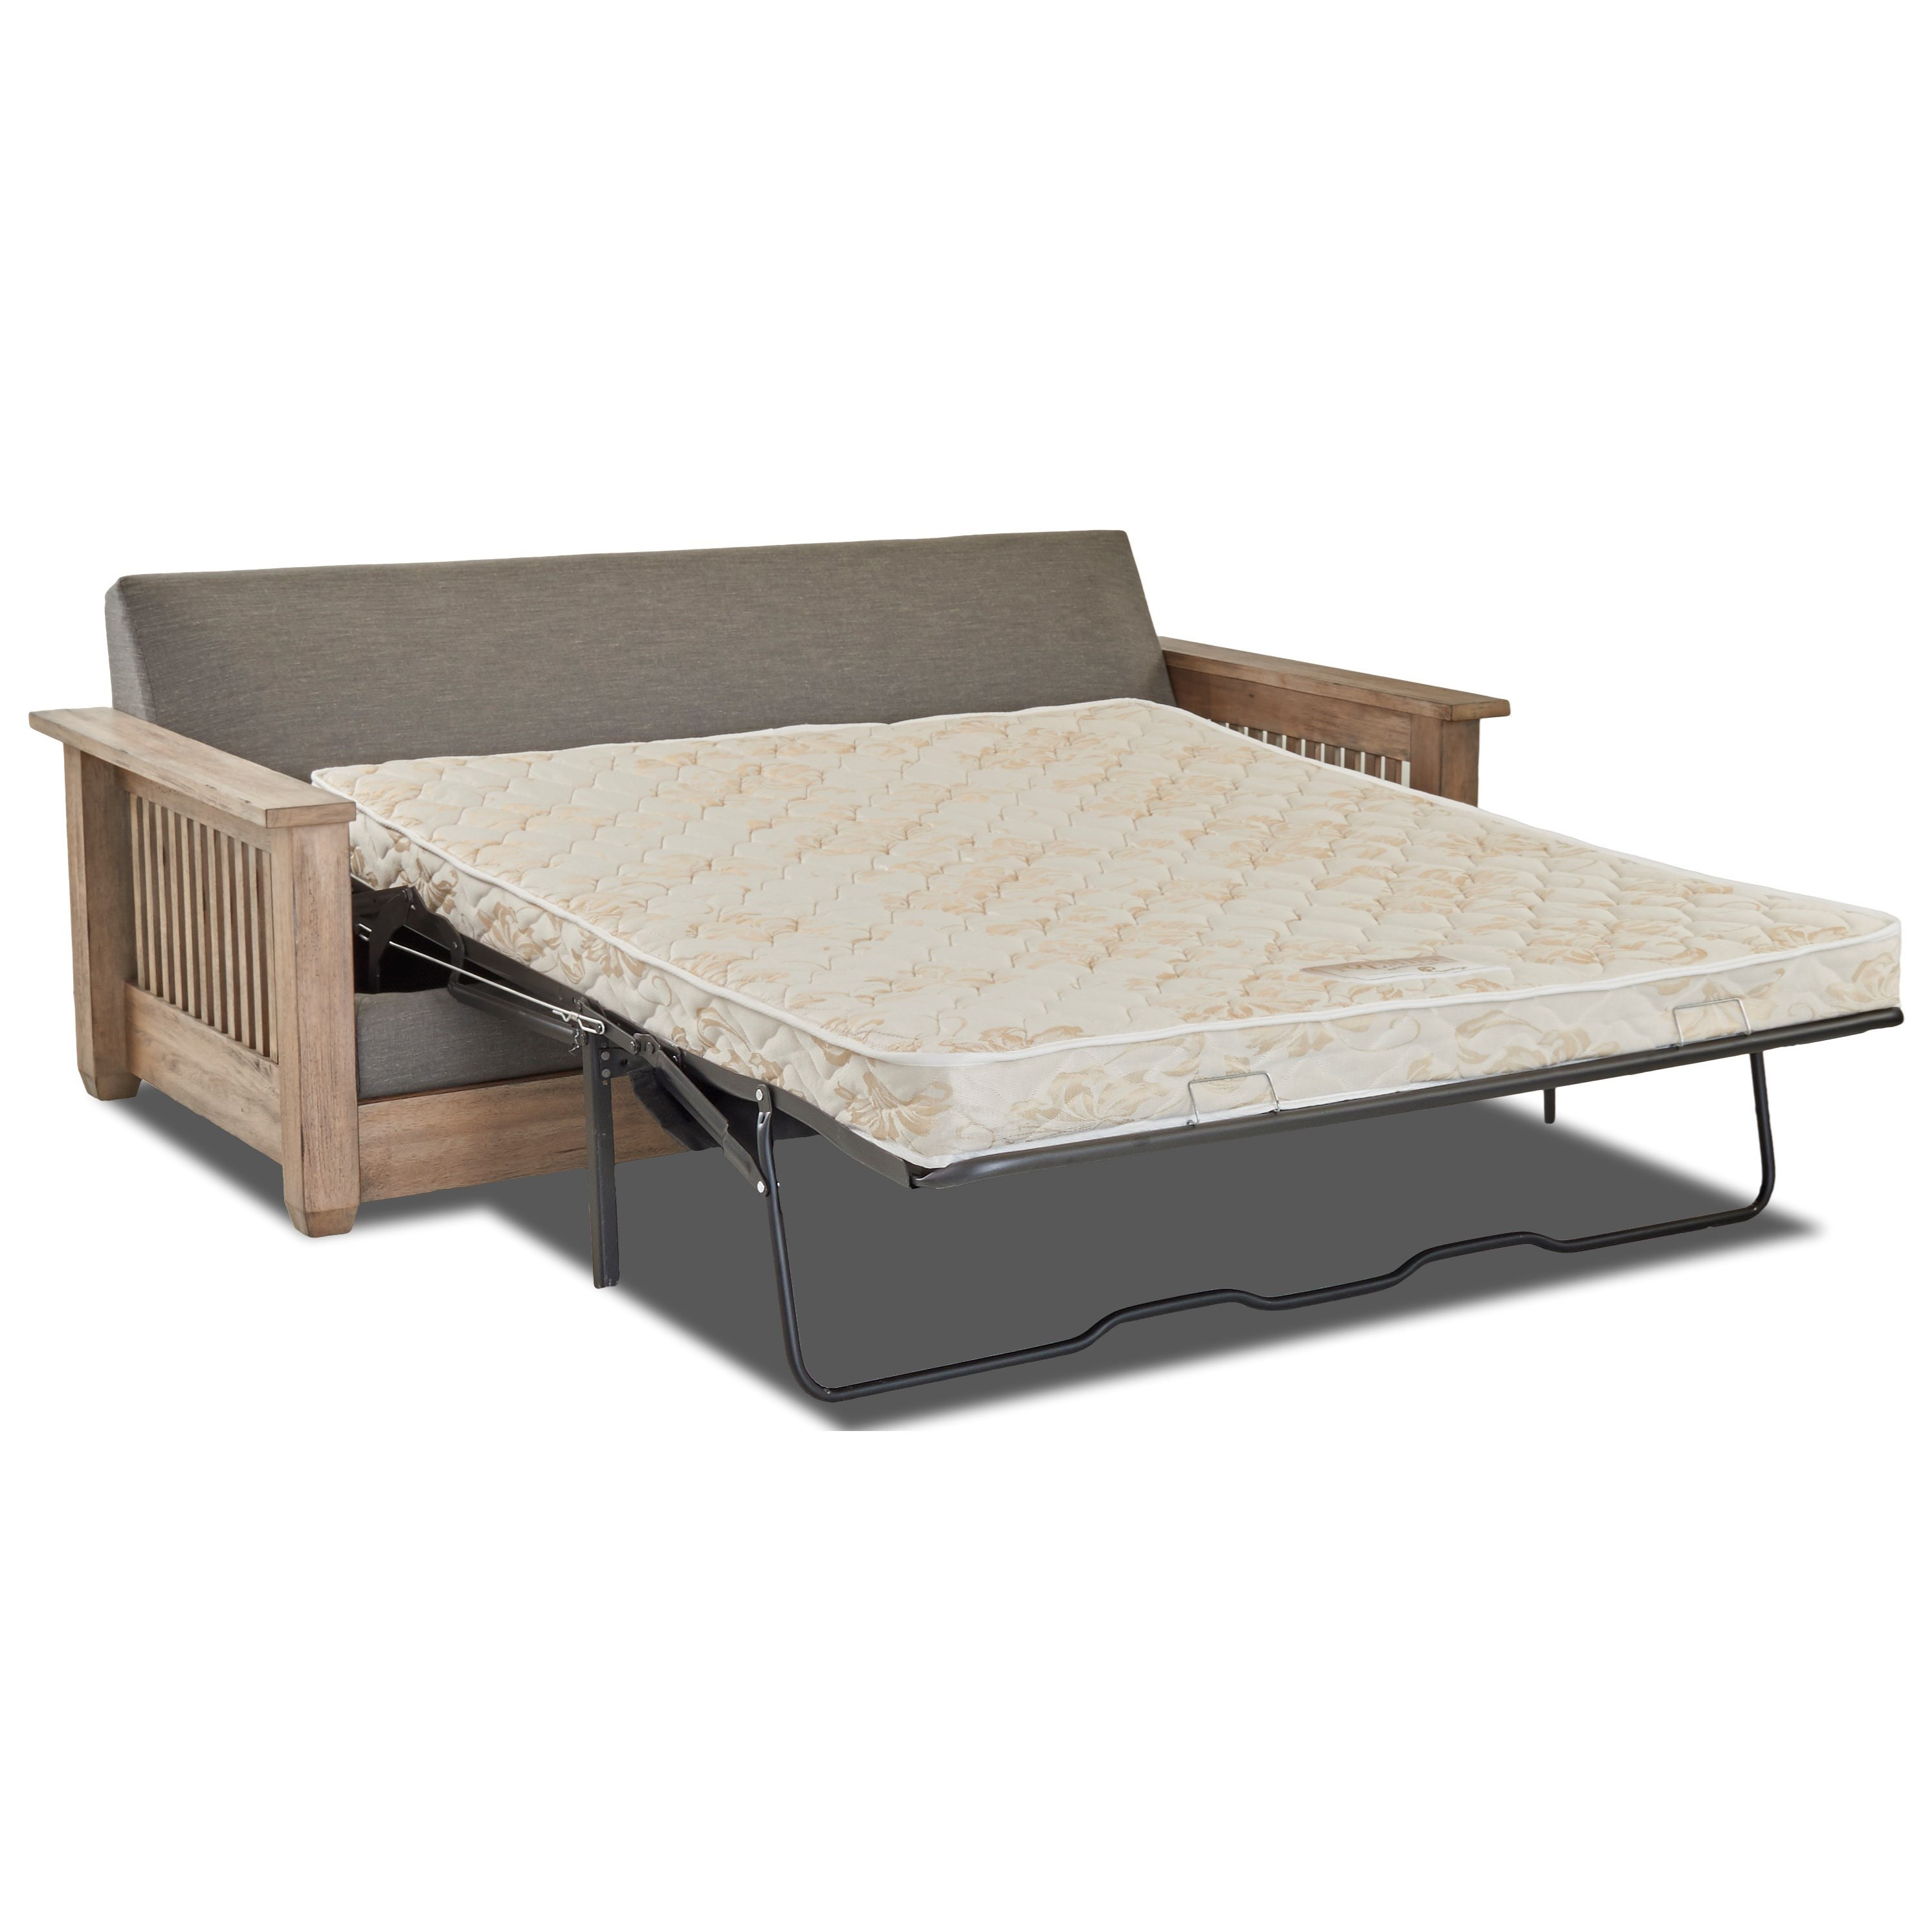 Best ideas about Queen Sleeper Sofa Mattress . Save or Pin Air Coil Mattress Queen Sleeper Sofa with Mission Style Now.